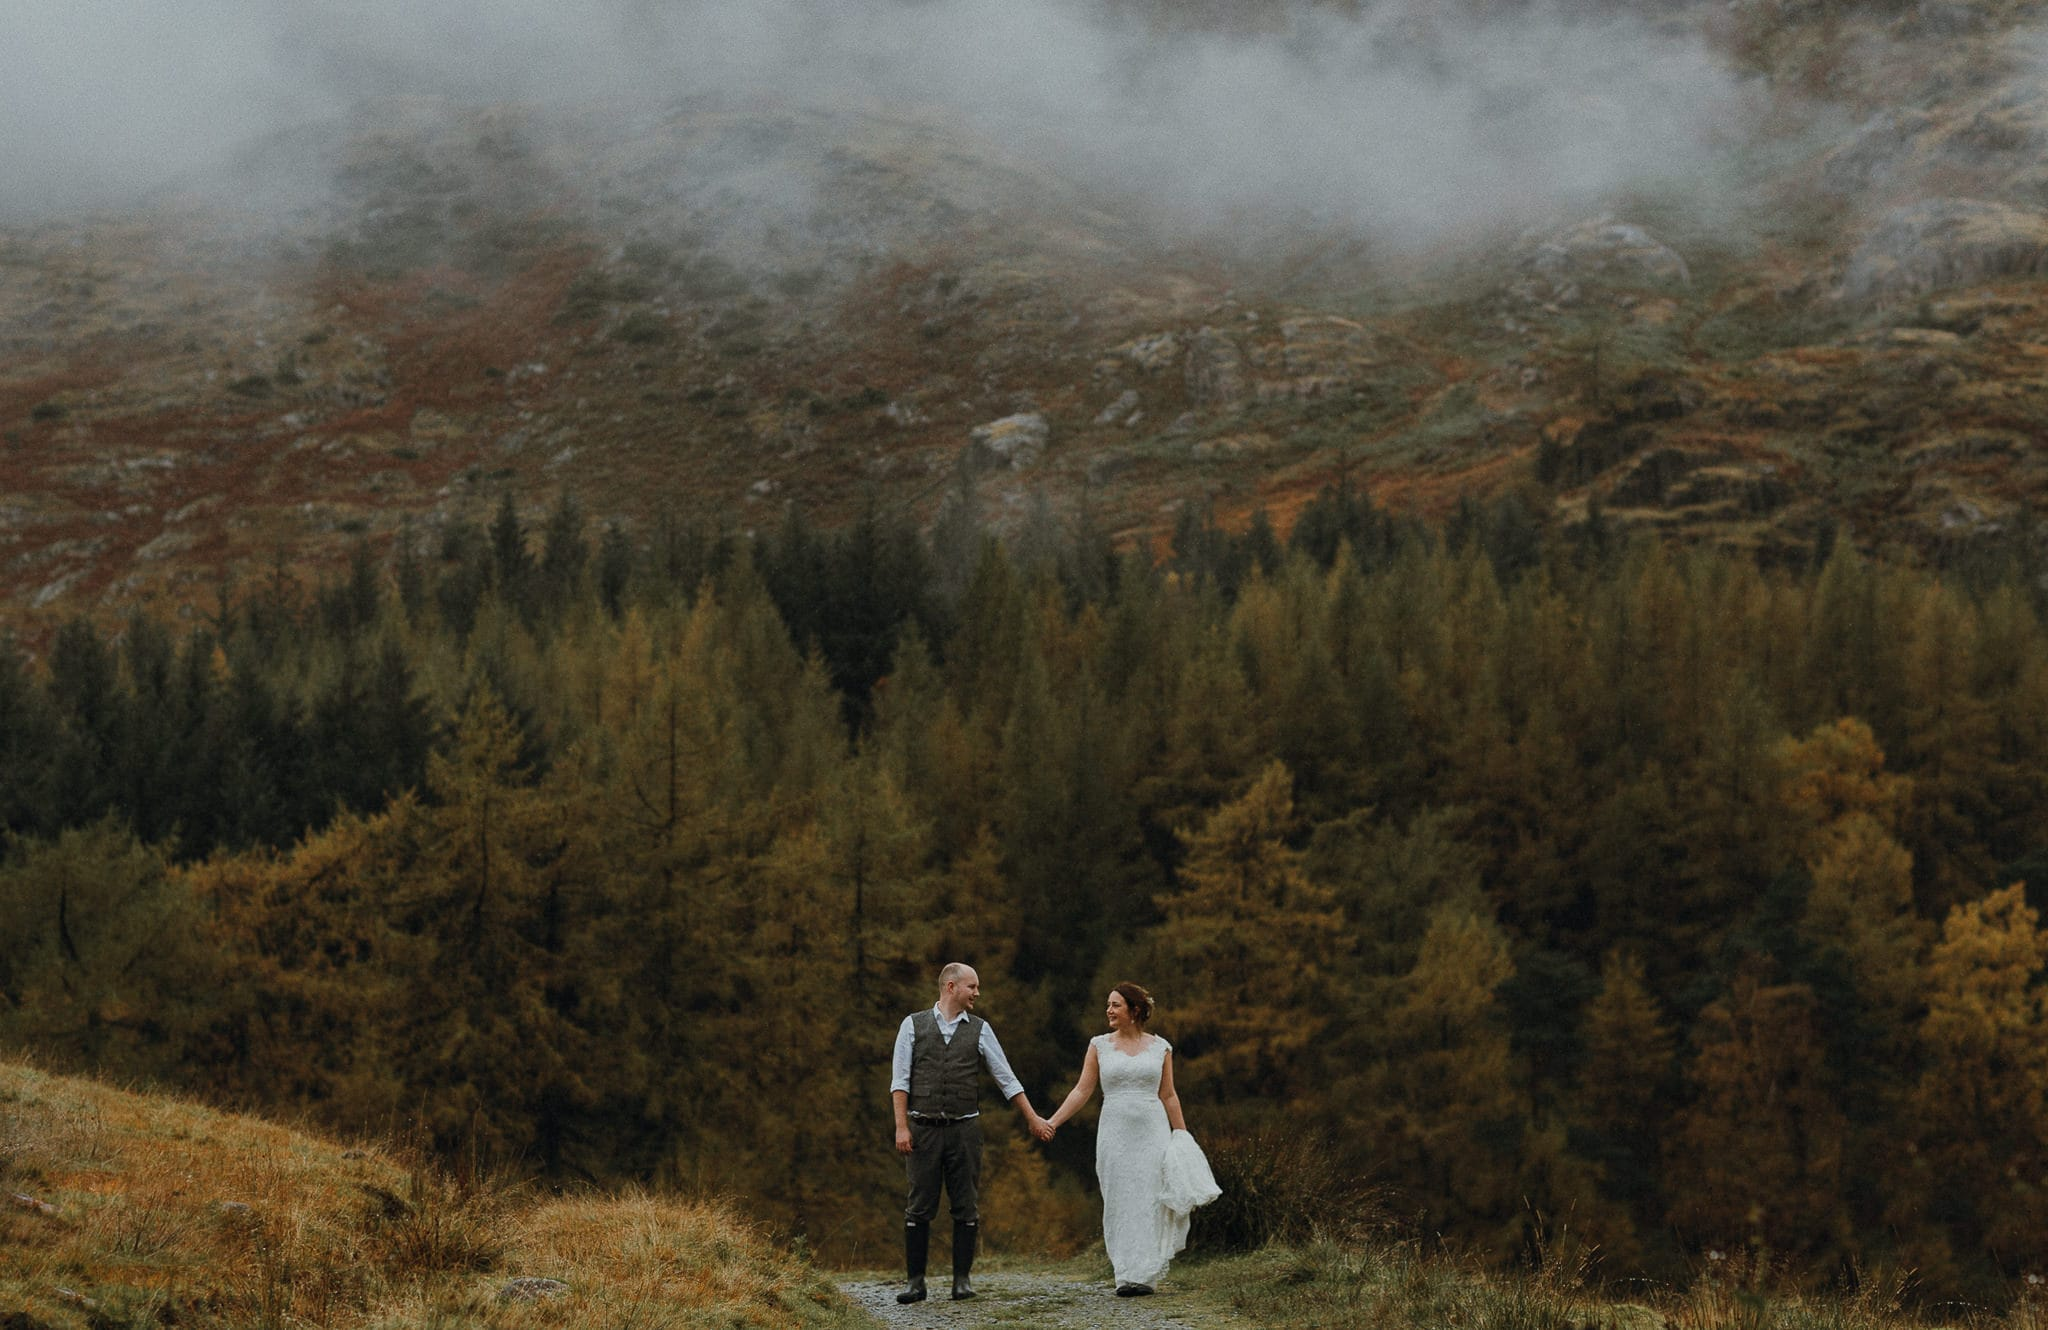 Sharing a moment holding hands at Blea Tarn, Langdale